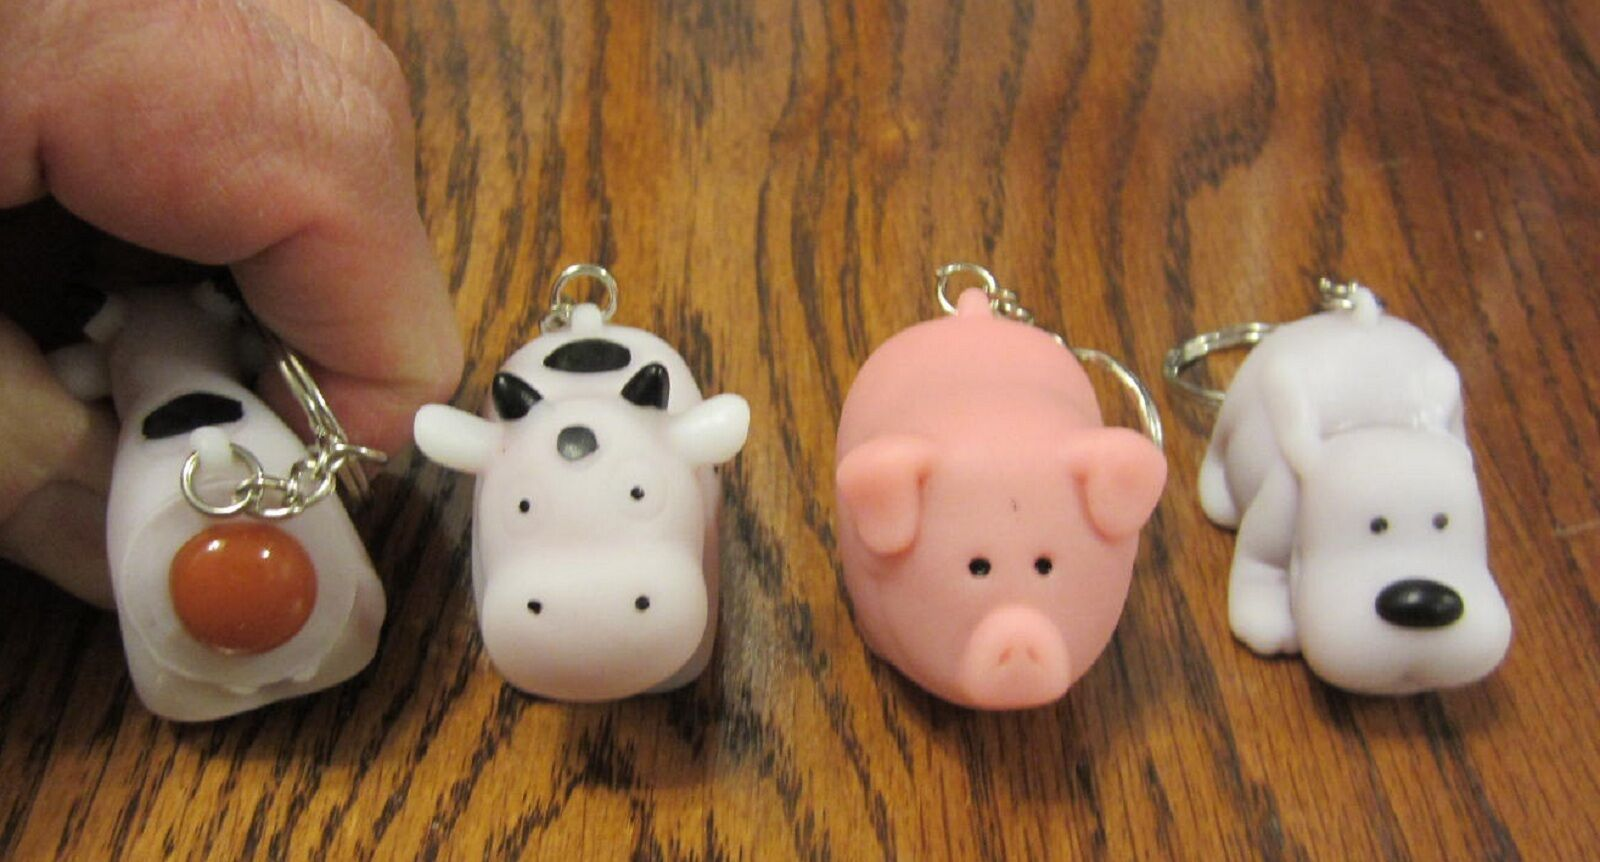 3 NEW NAUGHTY FARM ANIMALS POOPING KEYCHAIN DOG PIG OR COW SQUEEZE POOP KEY RING